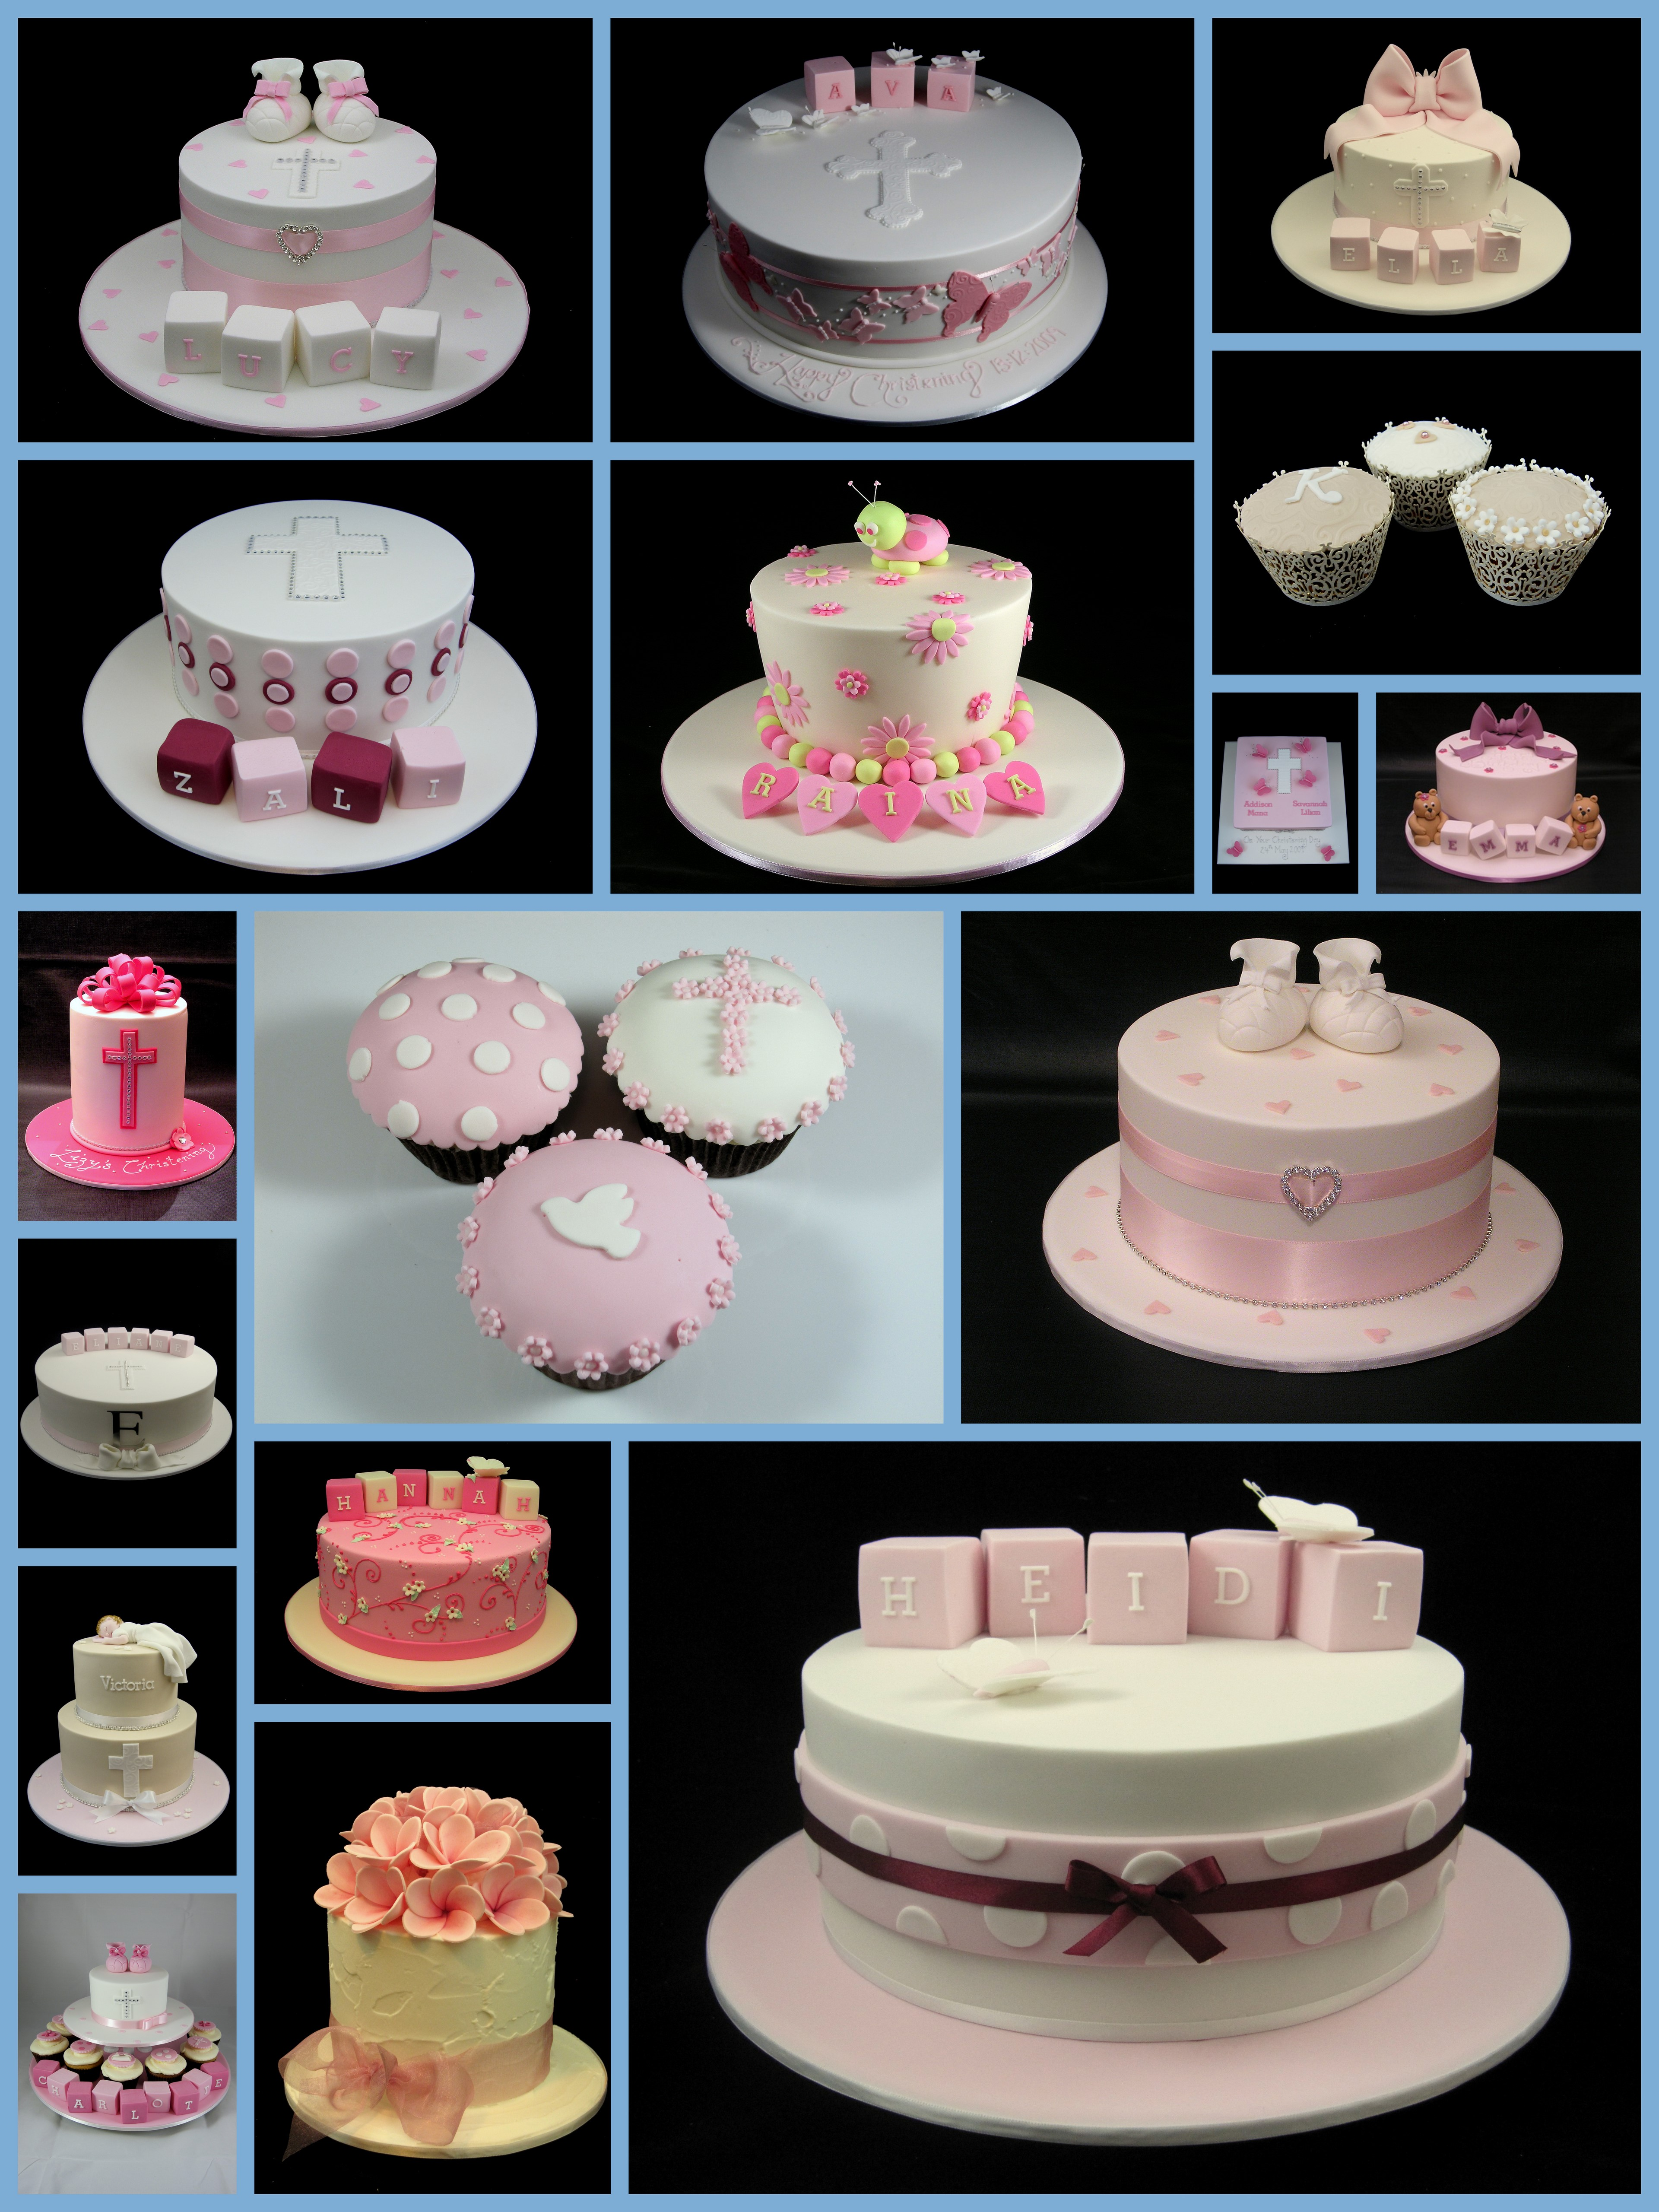 Cupcake Christening Design : 301 Moved Permanently